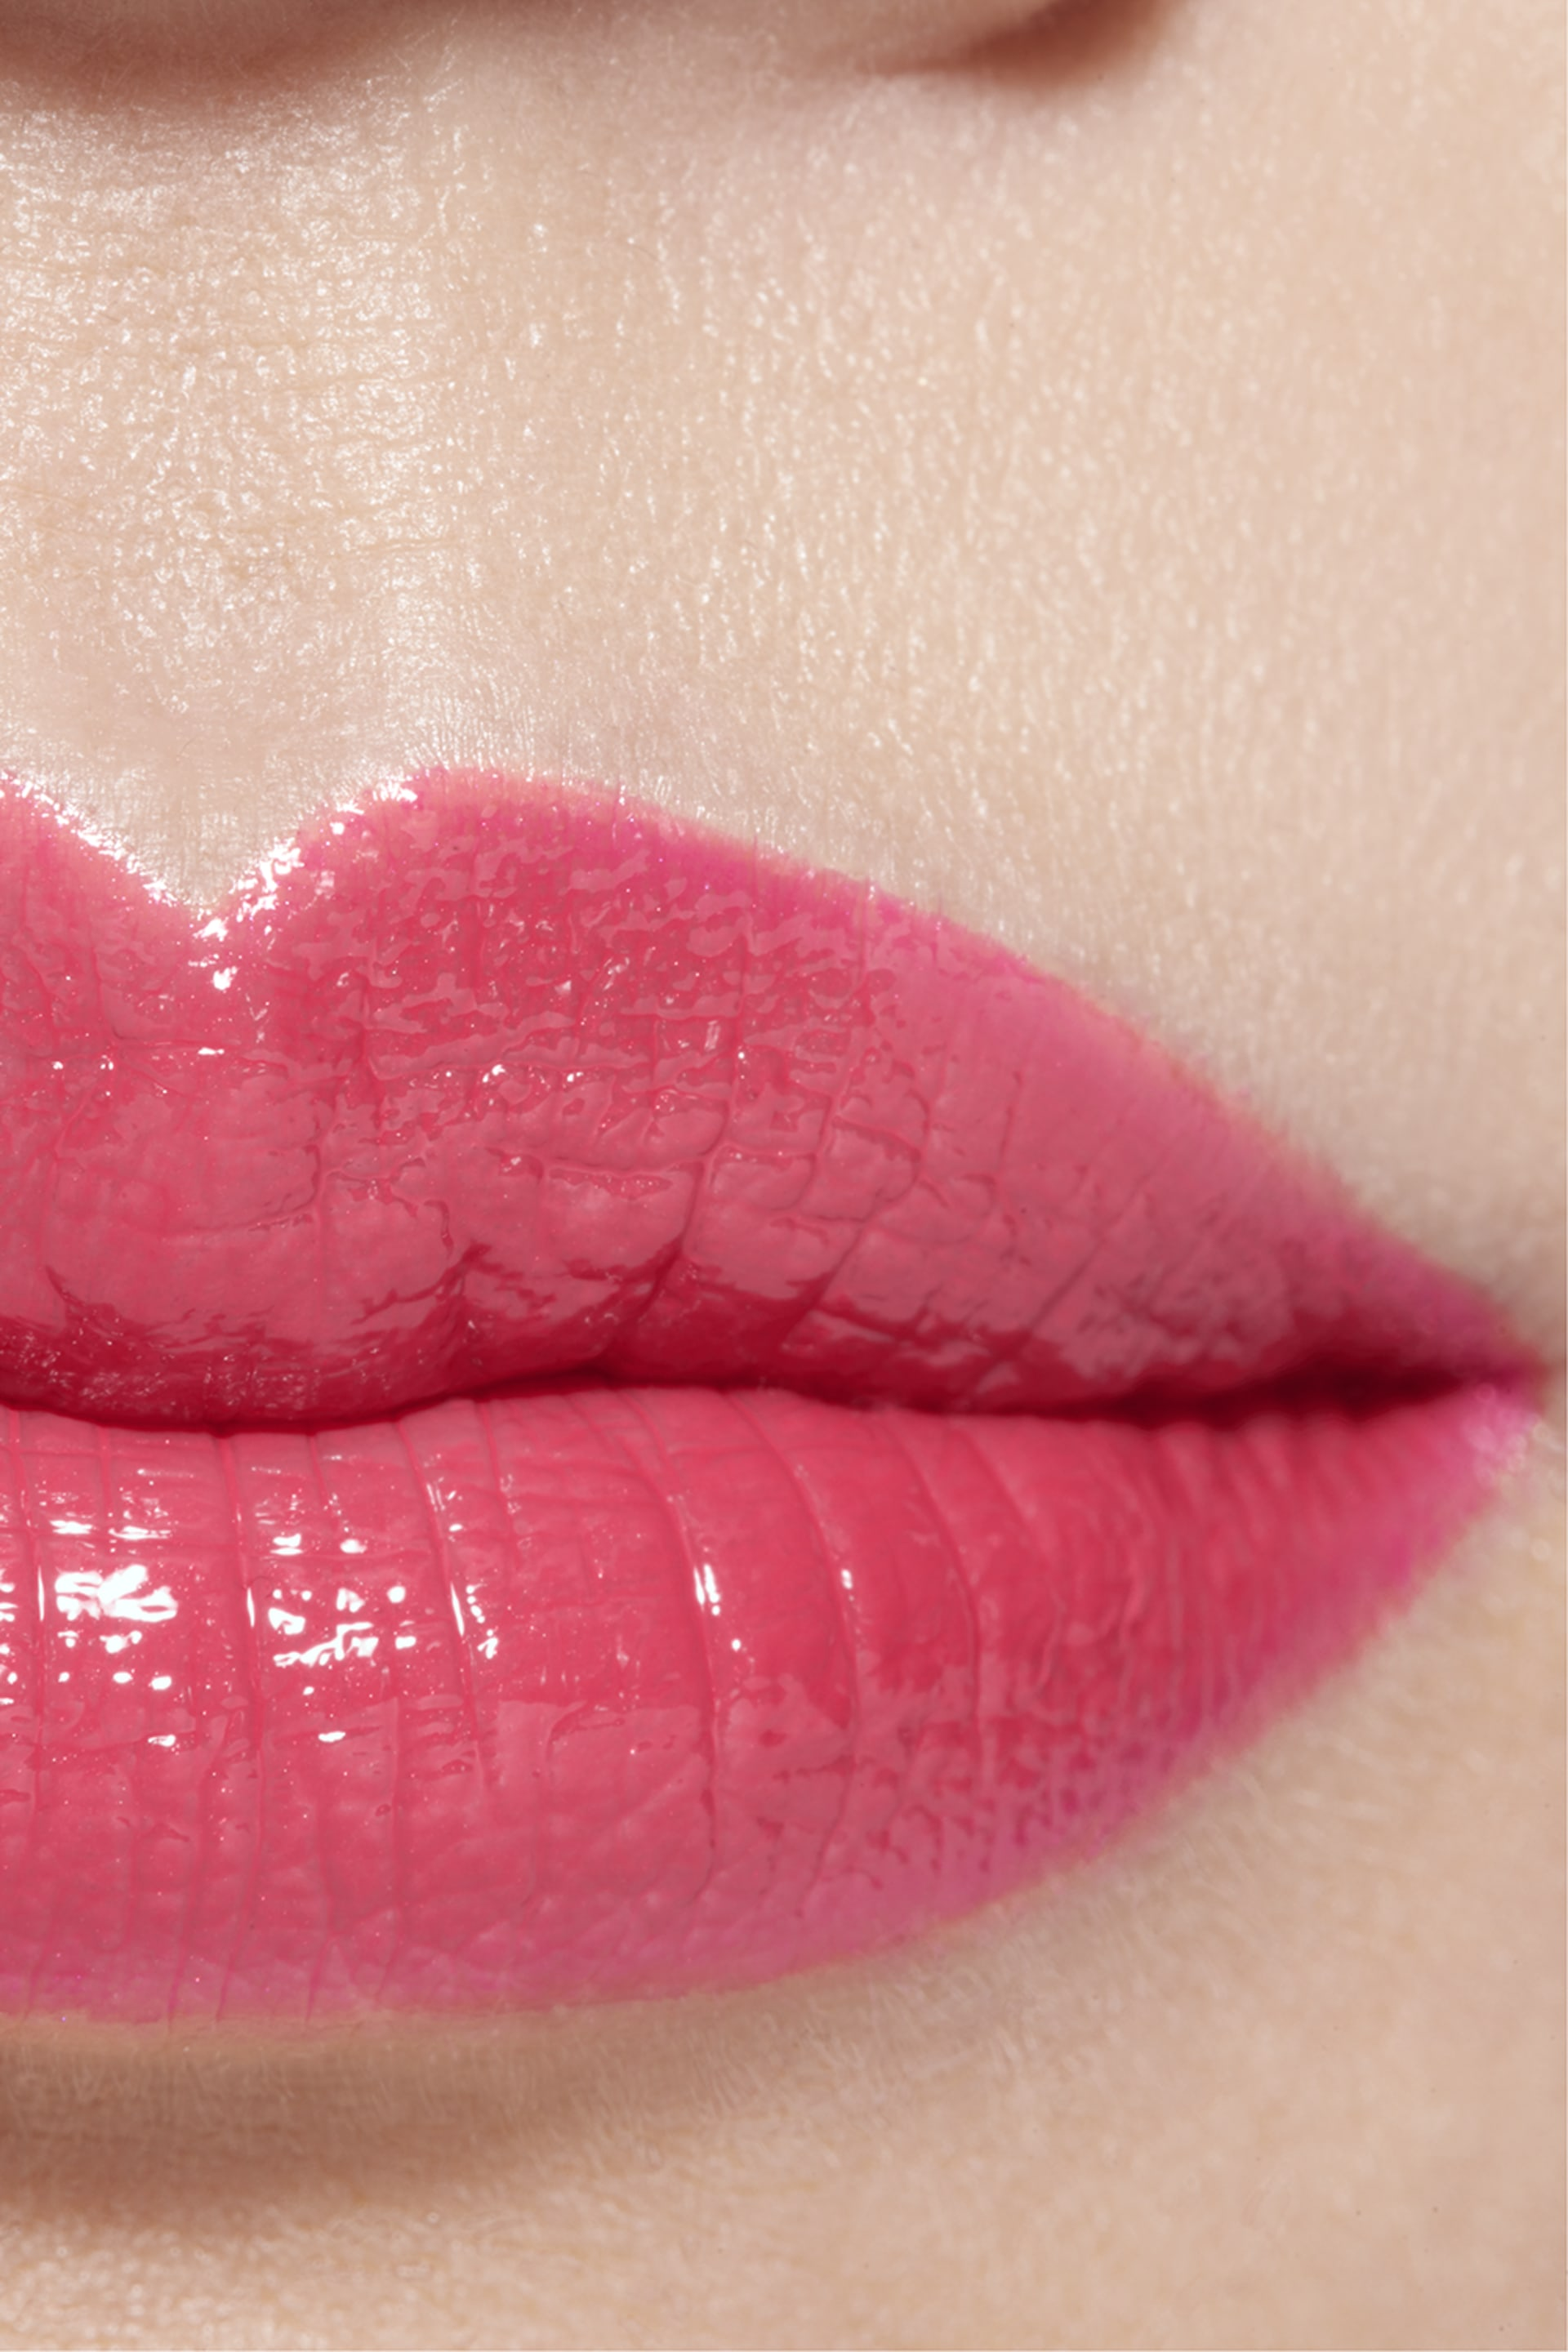 Application makeup visual 1 - ROUGE COCO 480 - CORAIL VIBRANT